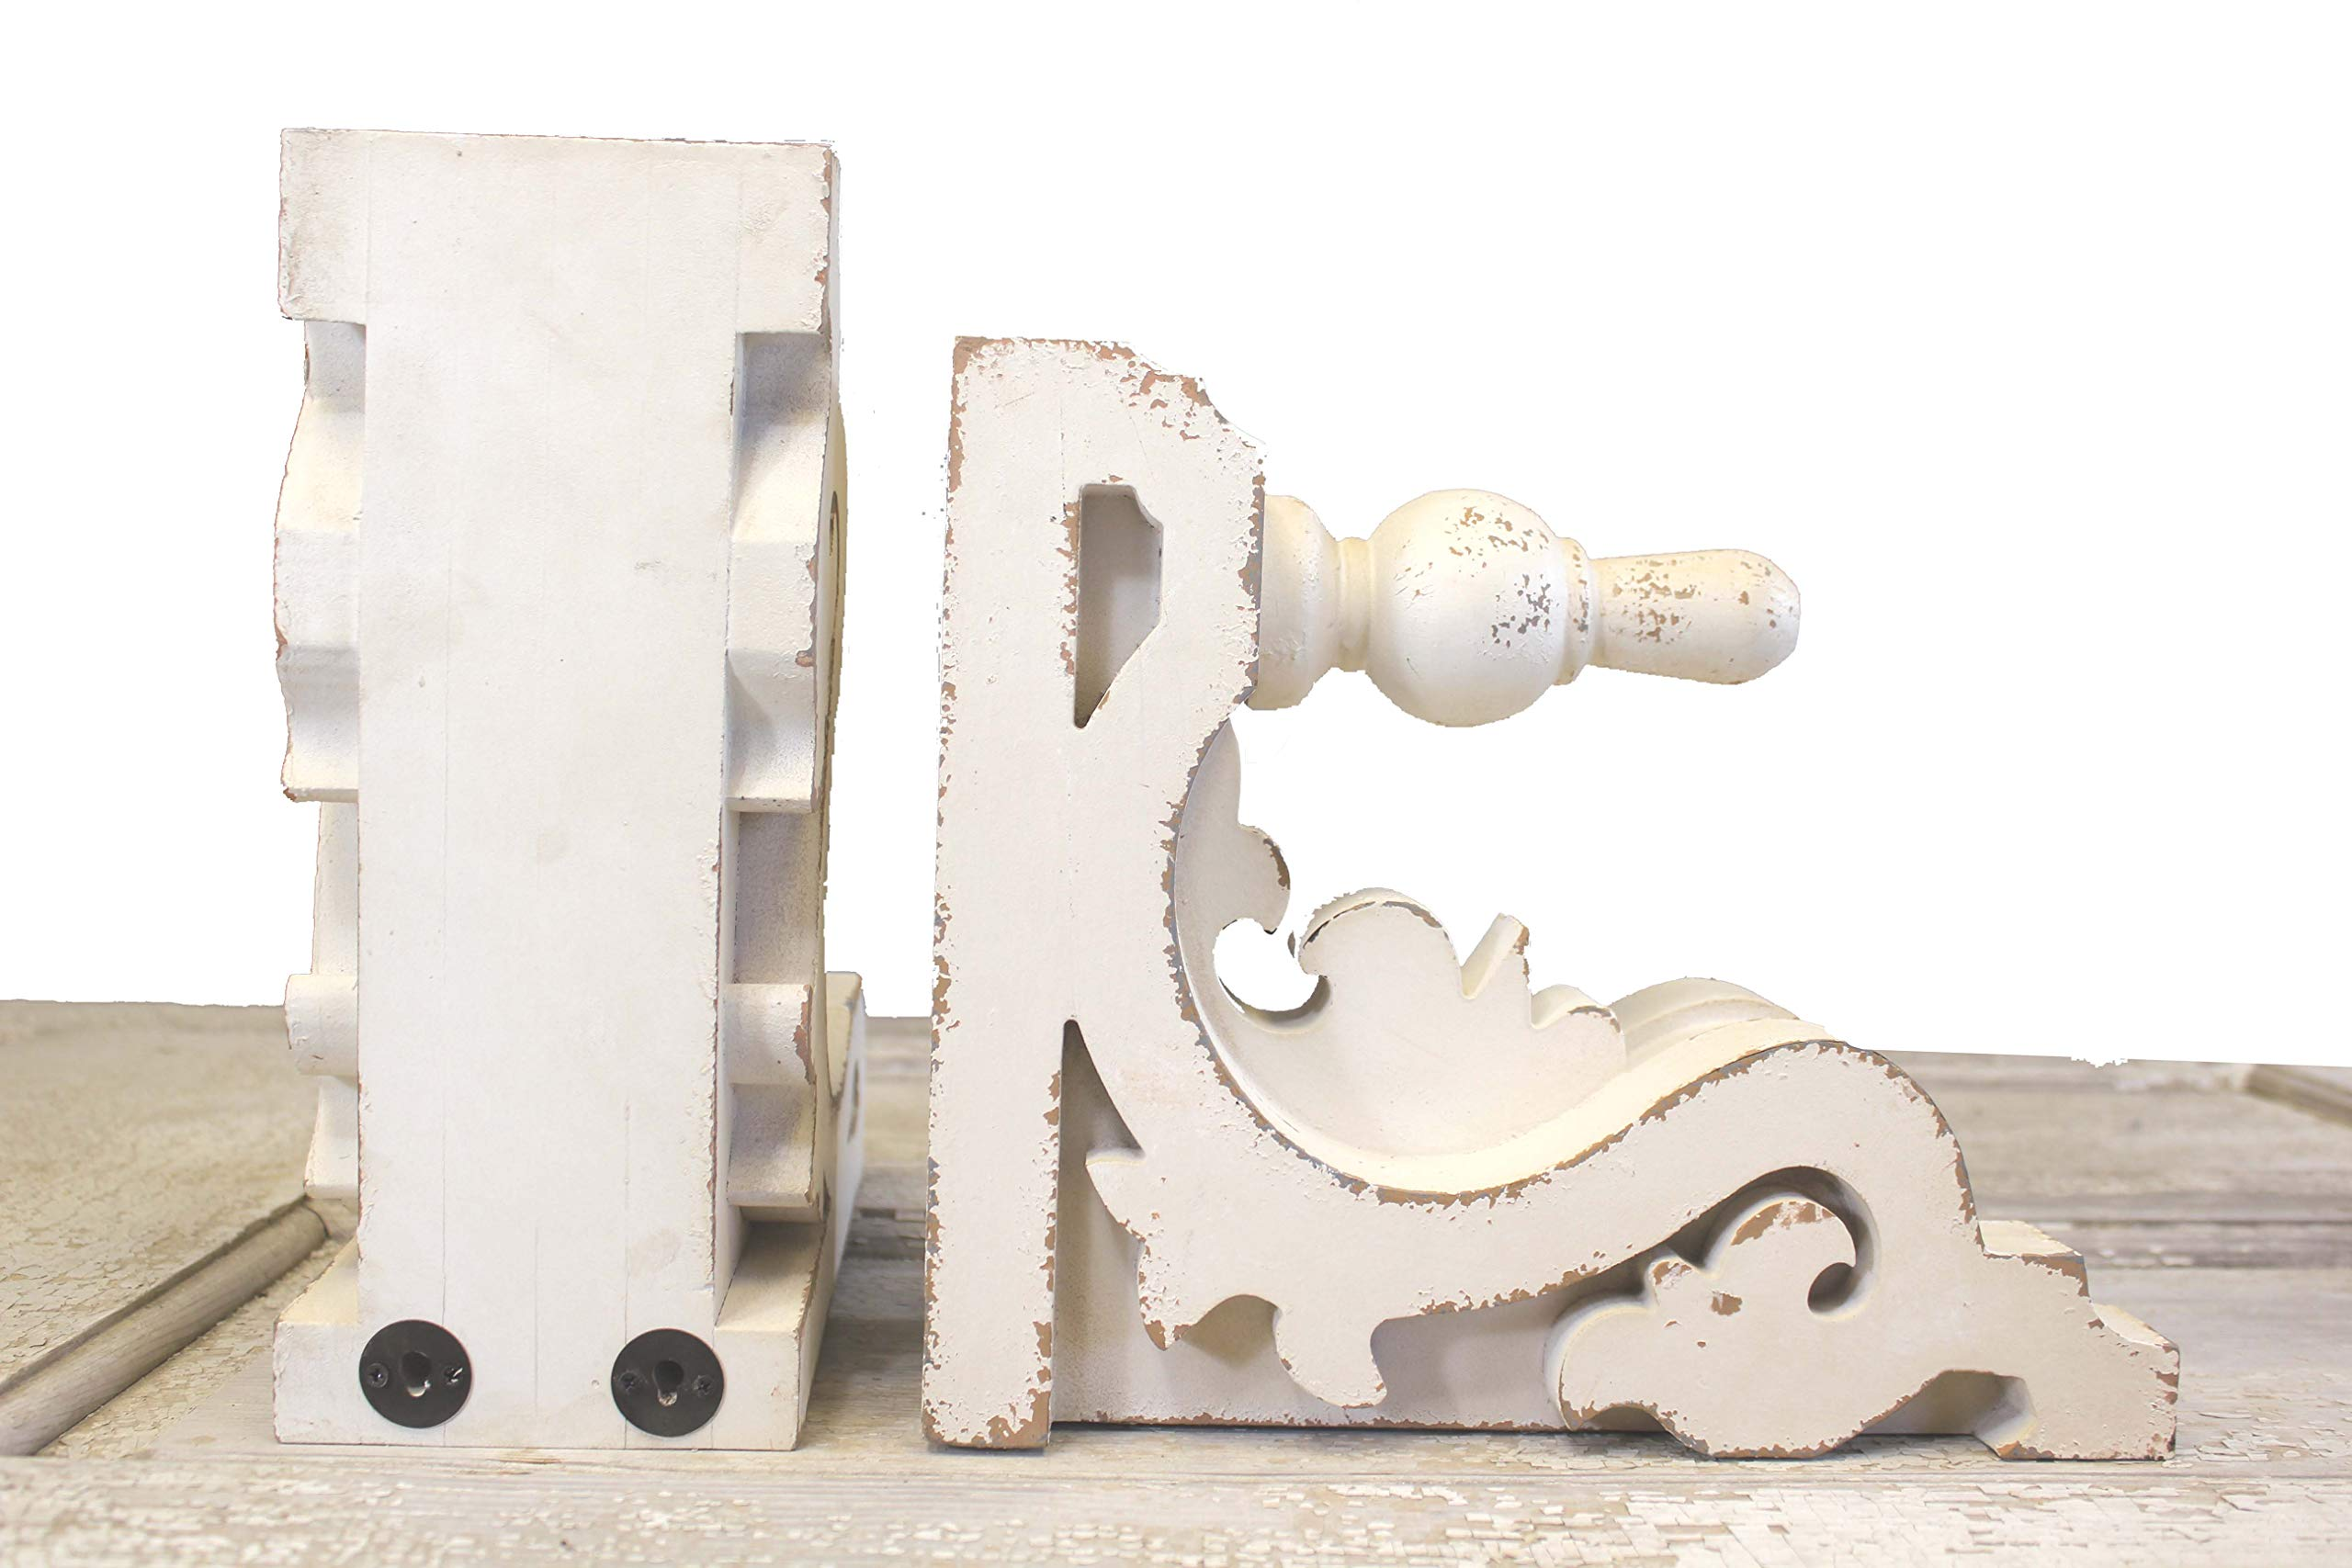 Silvercloud Trading Co. Architectural Corbels, Wall Shelf, Bookends - Large 11'' - Sold as Set of 2 - Ready to Hang - Painted & Distressed by Silvercloud Trading Co.